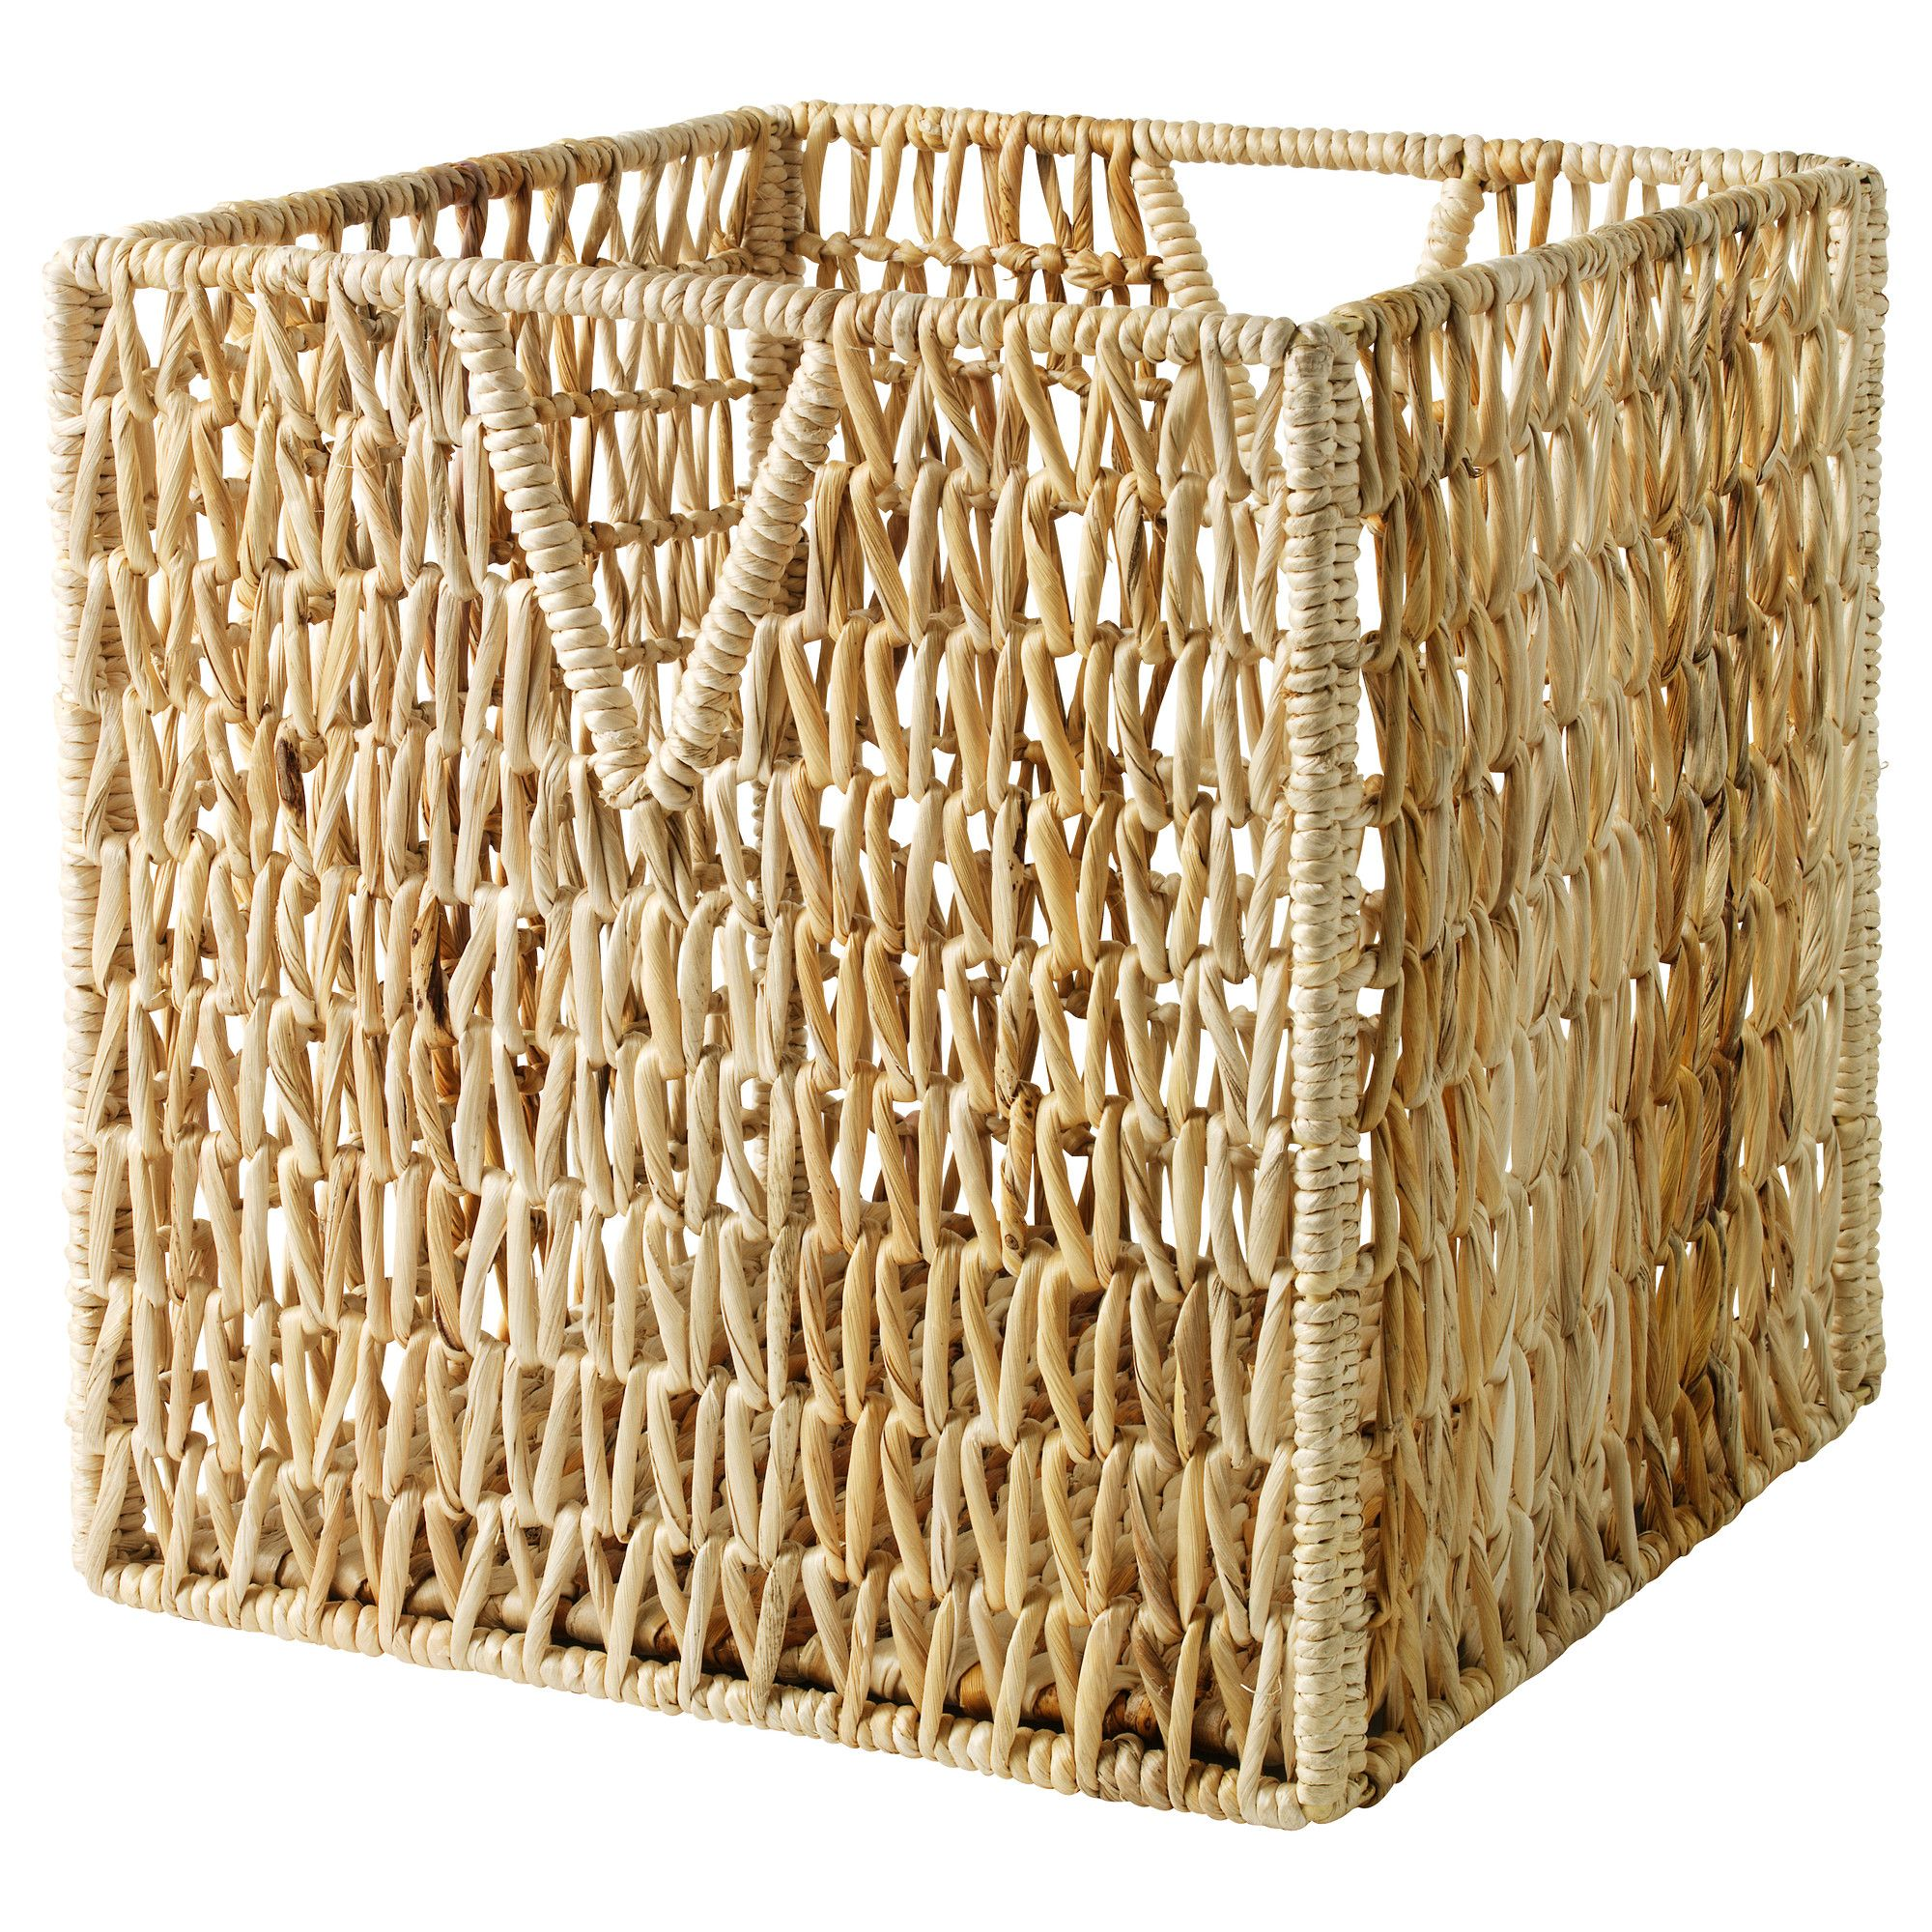 Genius Idea Ikea Expedit Shelves With Baskets For Storage: IKEA These Fit In The Cubicles Of The